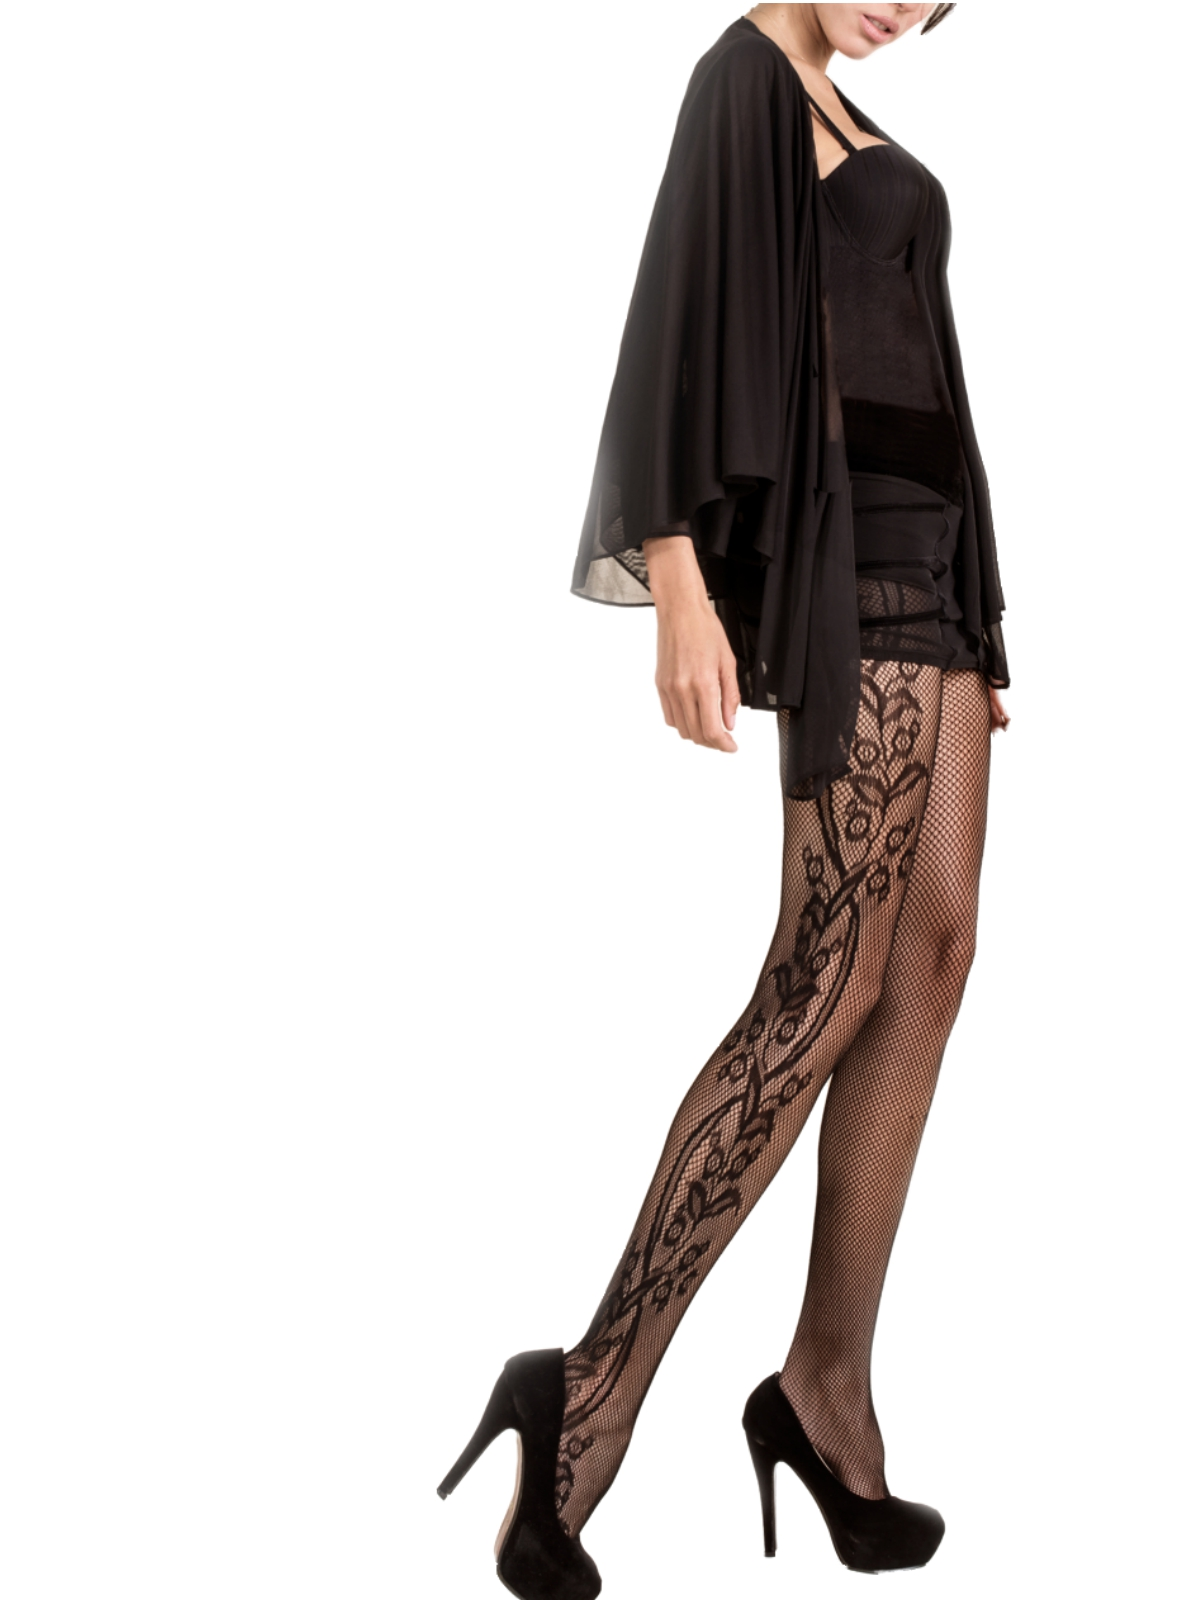 ac1af5c4a Killer Legs Women s Plus Size Black Fishnet Pantyhose Side Whimsical Floral  Inset 168YD041Q Queen